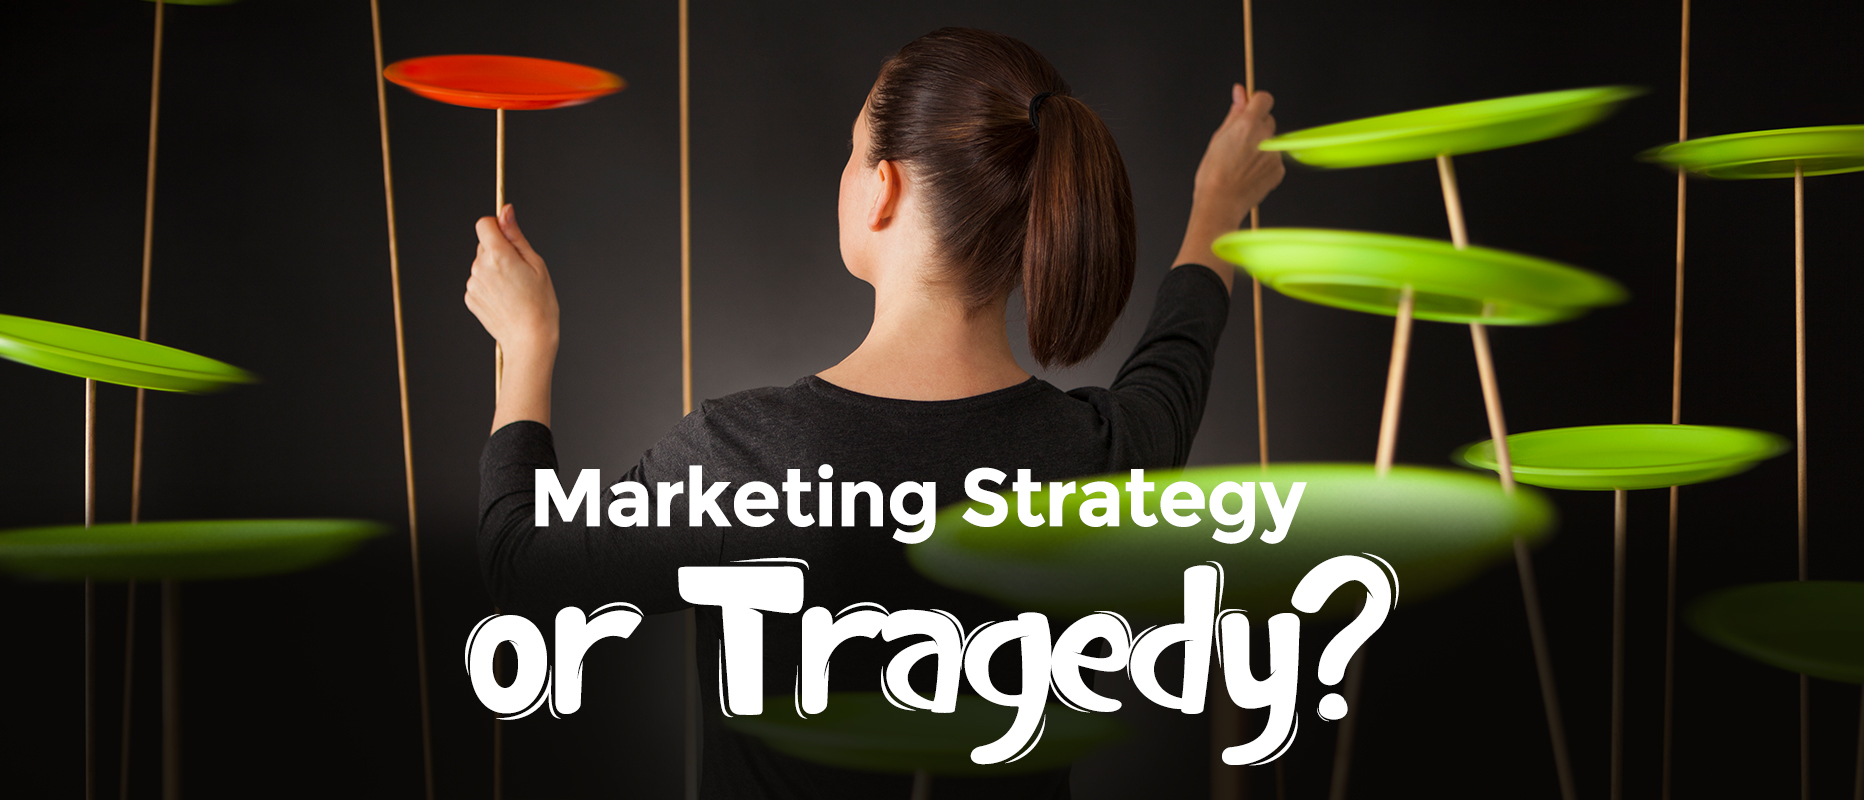 Marketing Value Misconceptions: Is Your Strategy a Tragedy?